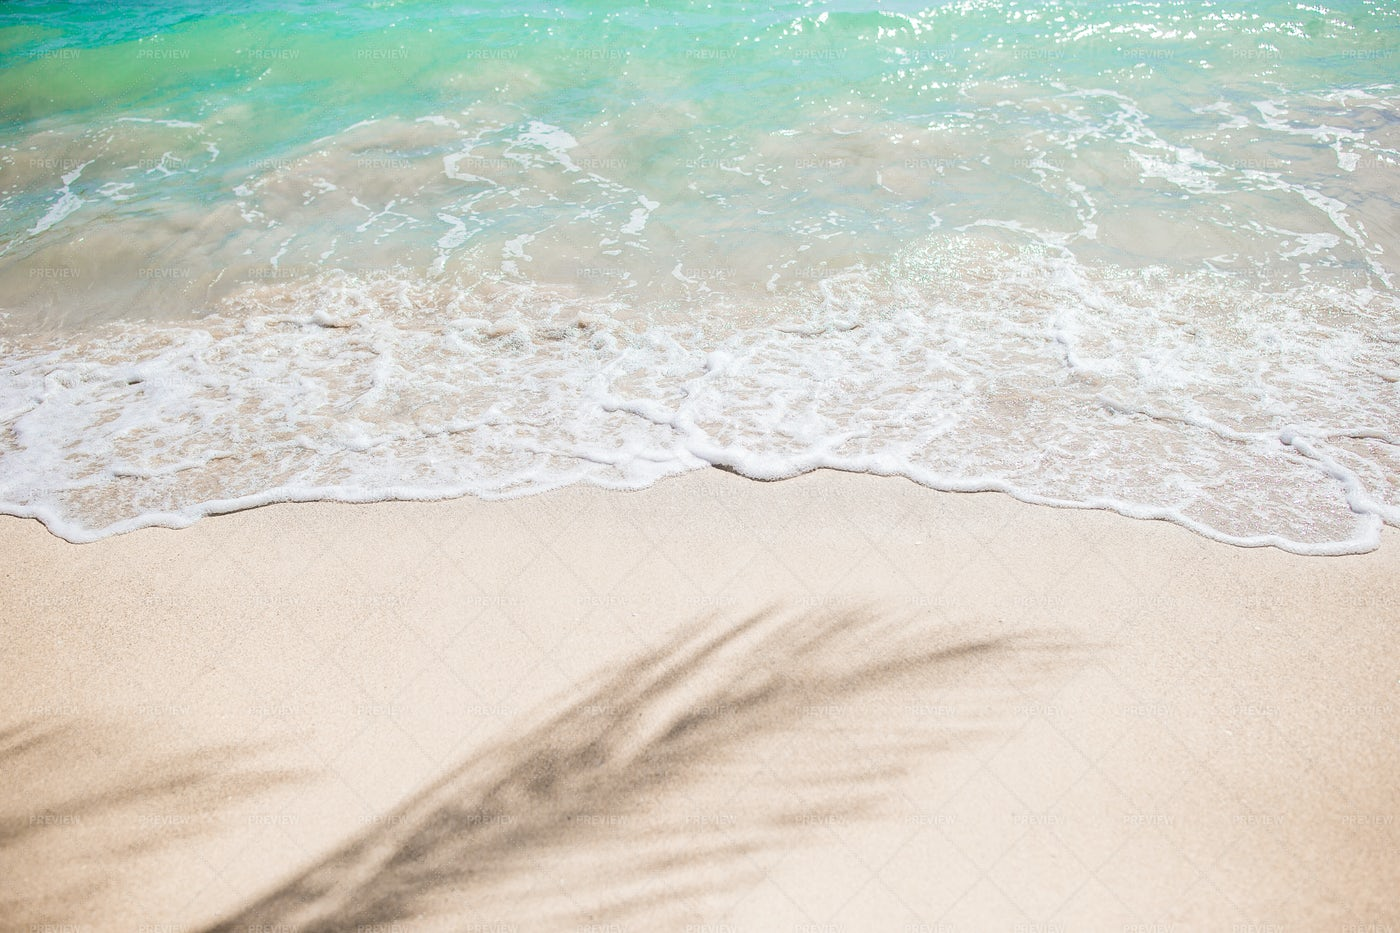 Waves Roll On The Sand: Stock Photos